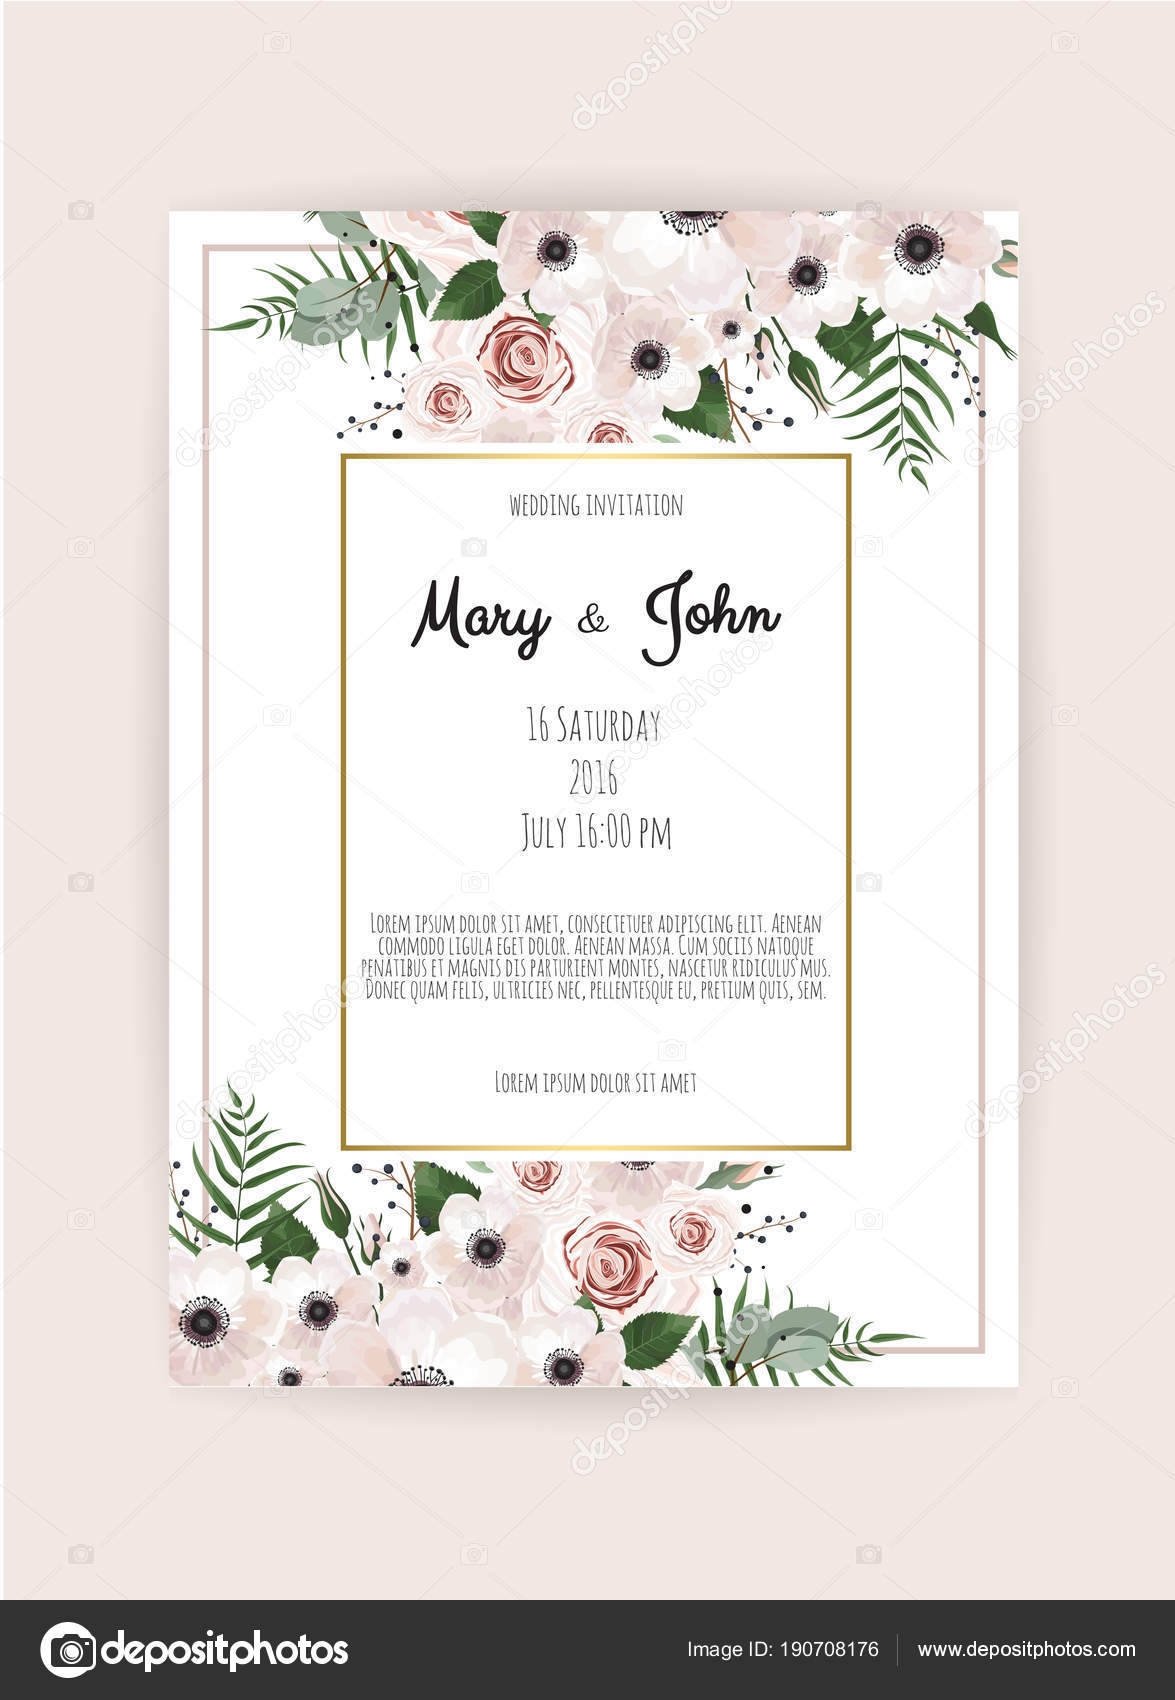 Wedding invitation cards floral elements pink background vetores wedding invitation cards floral elements pink background vetores de stock stopboris Gallery